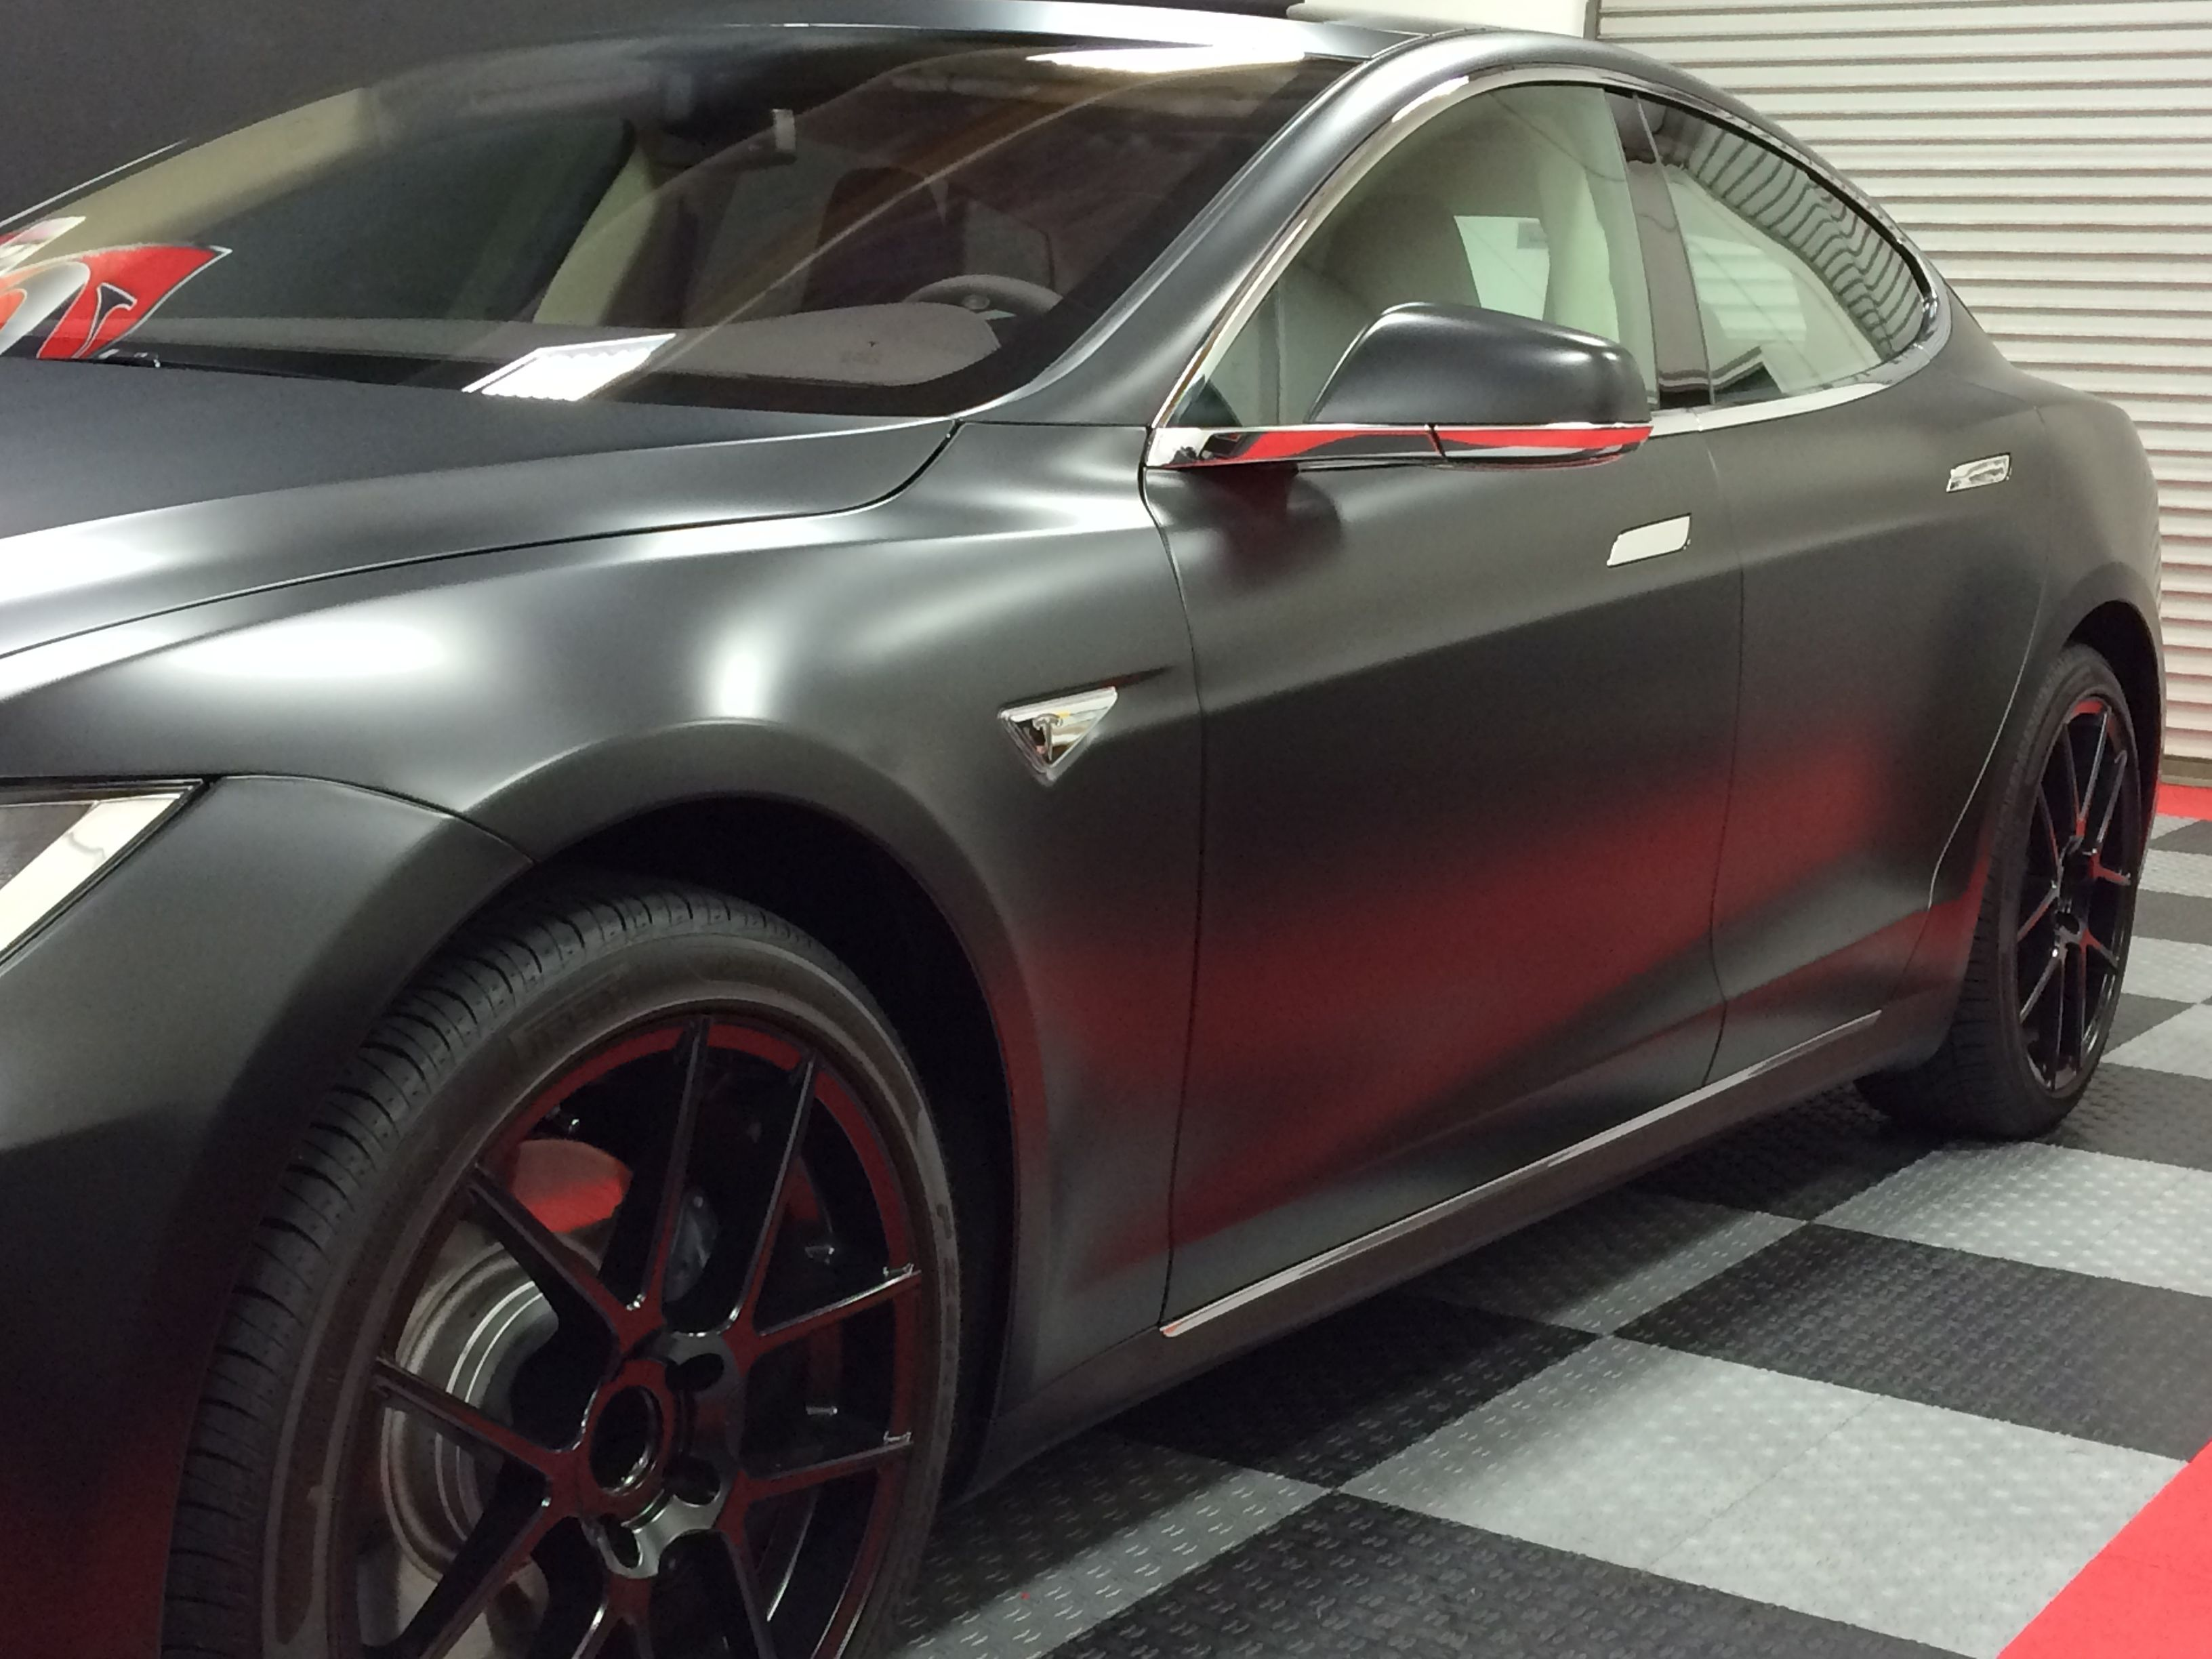 Matte Finish Paint >> Tesla Model S Full Car Matte Finish Paint Protection Wrap Done By